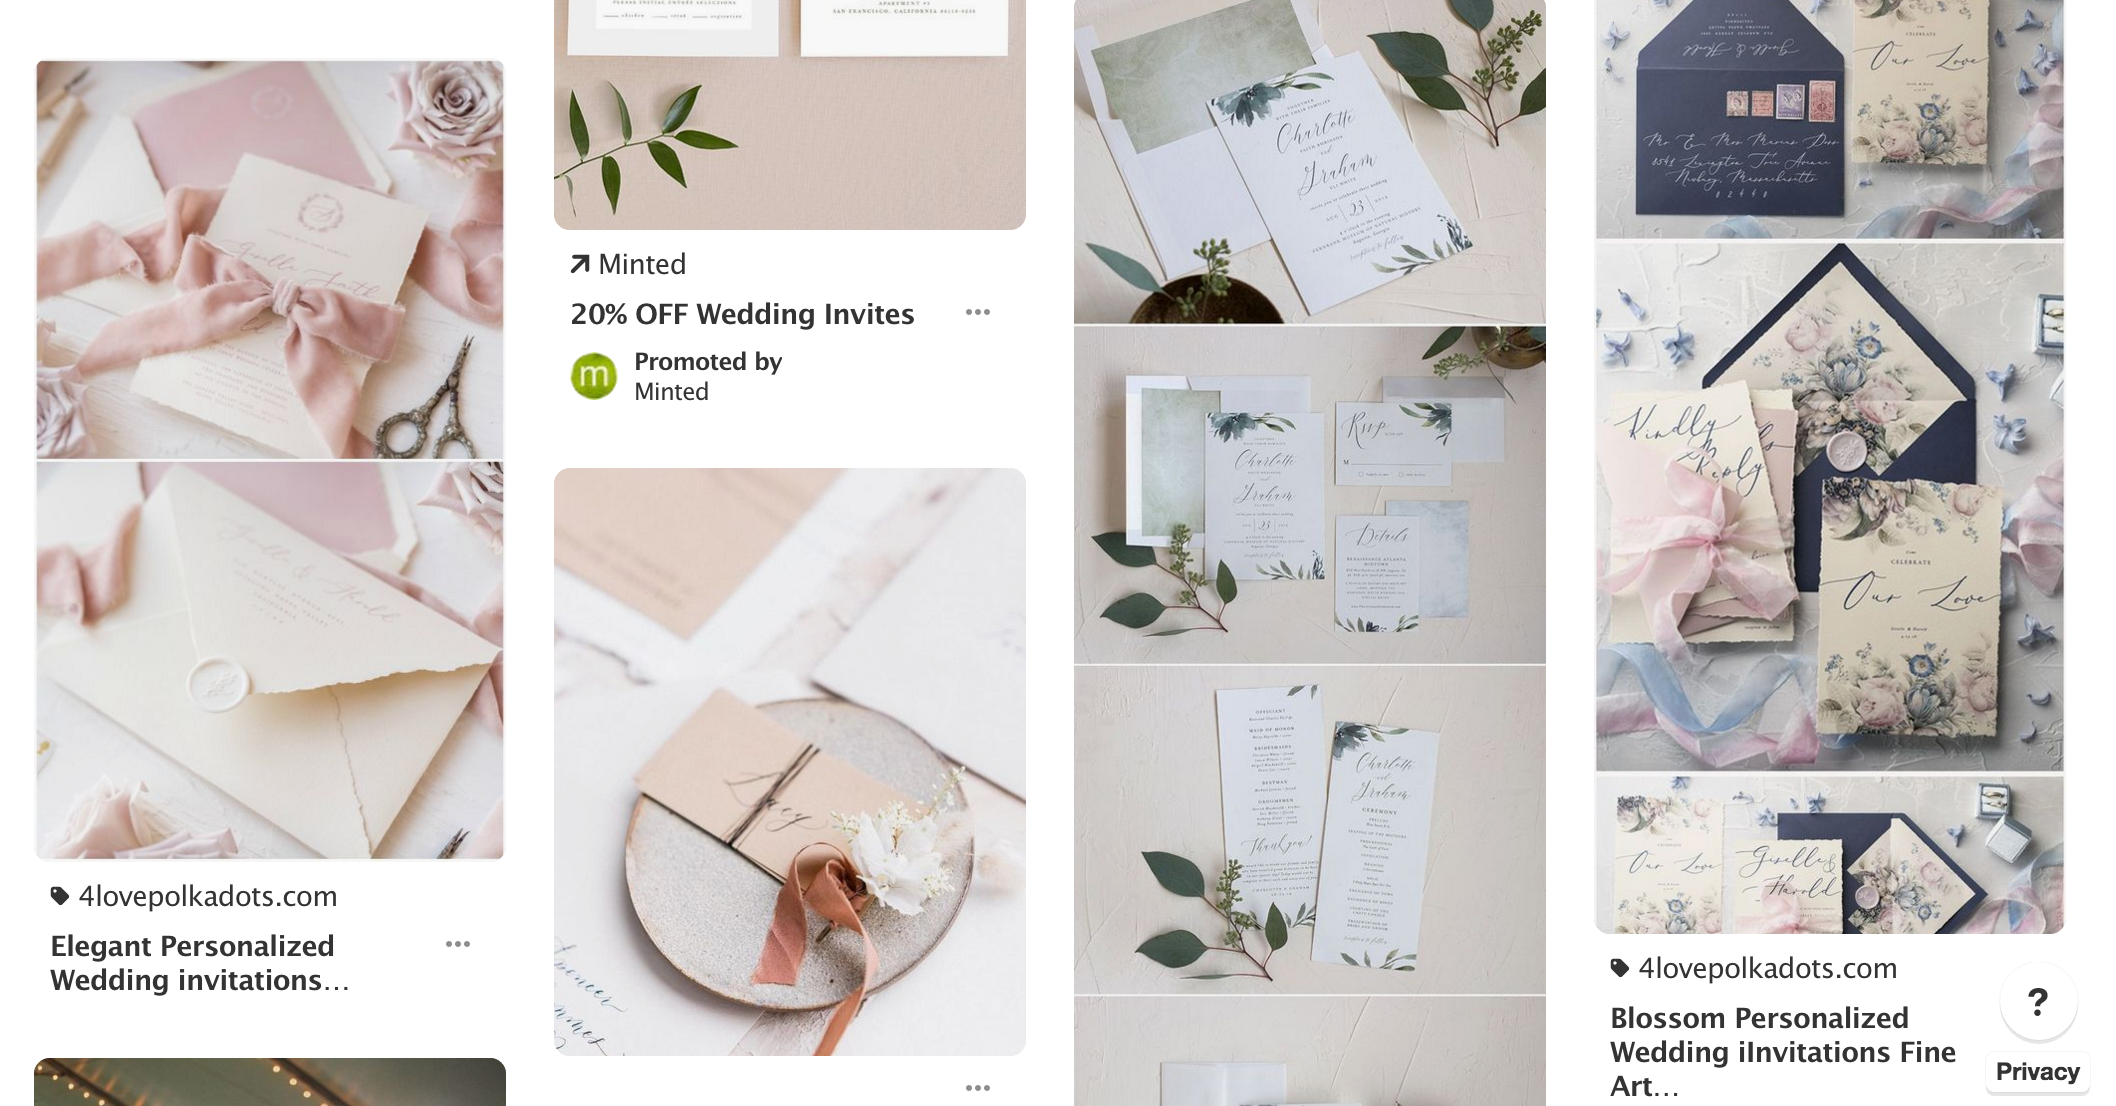 how to use pinterest as a bride